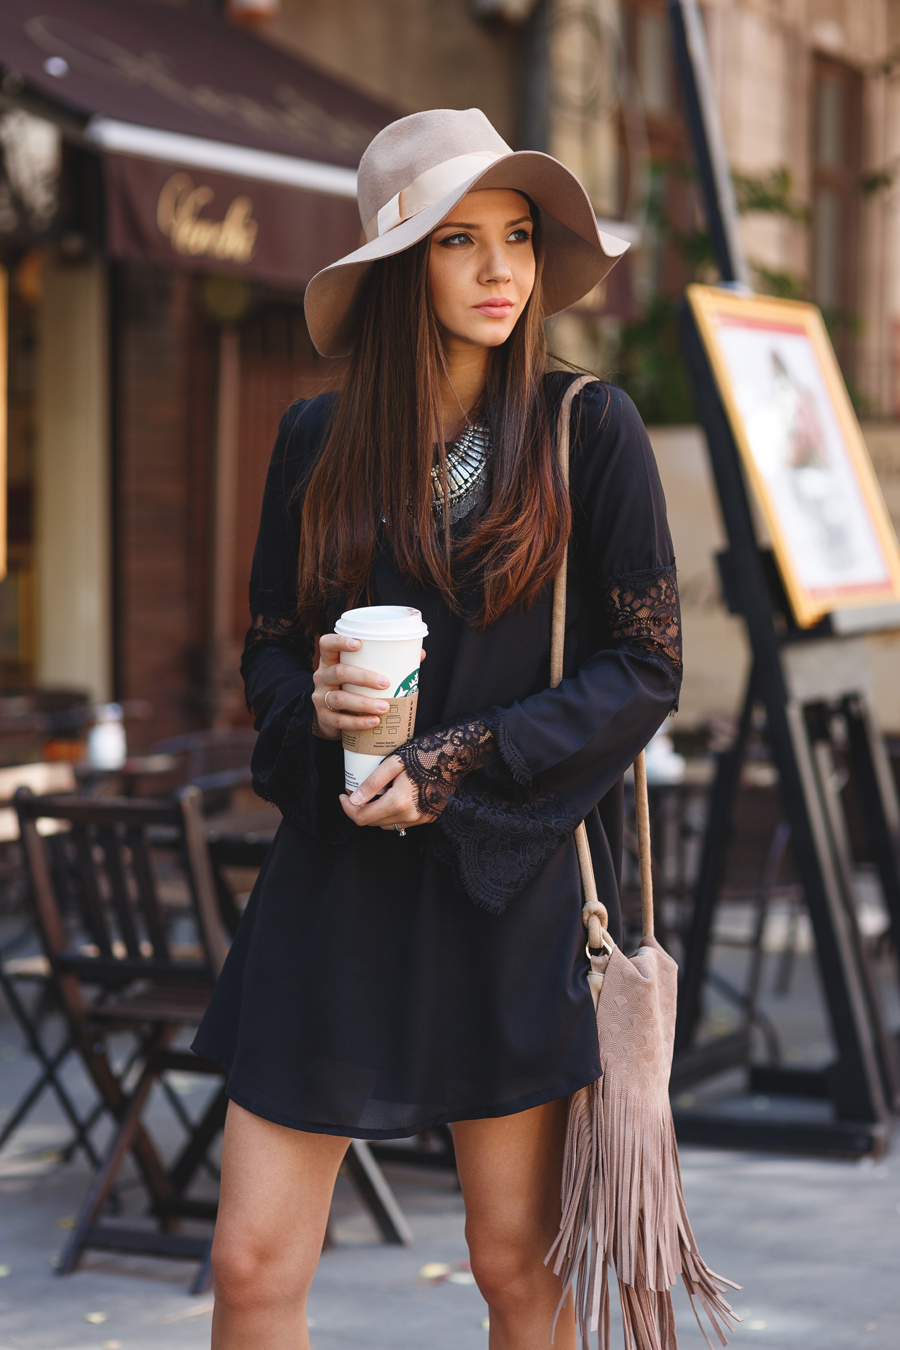 The Boho Outfits File What Is Bohemian Style And How Do